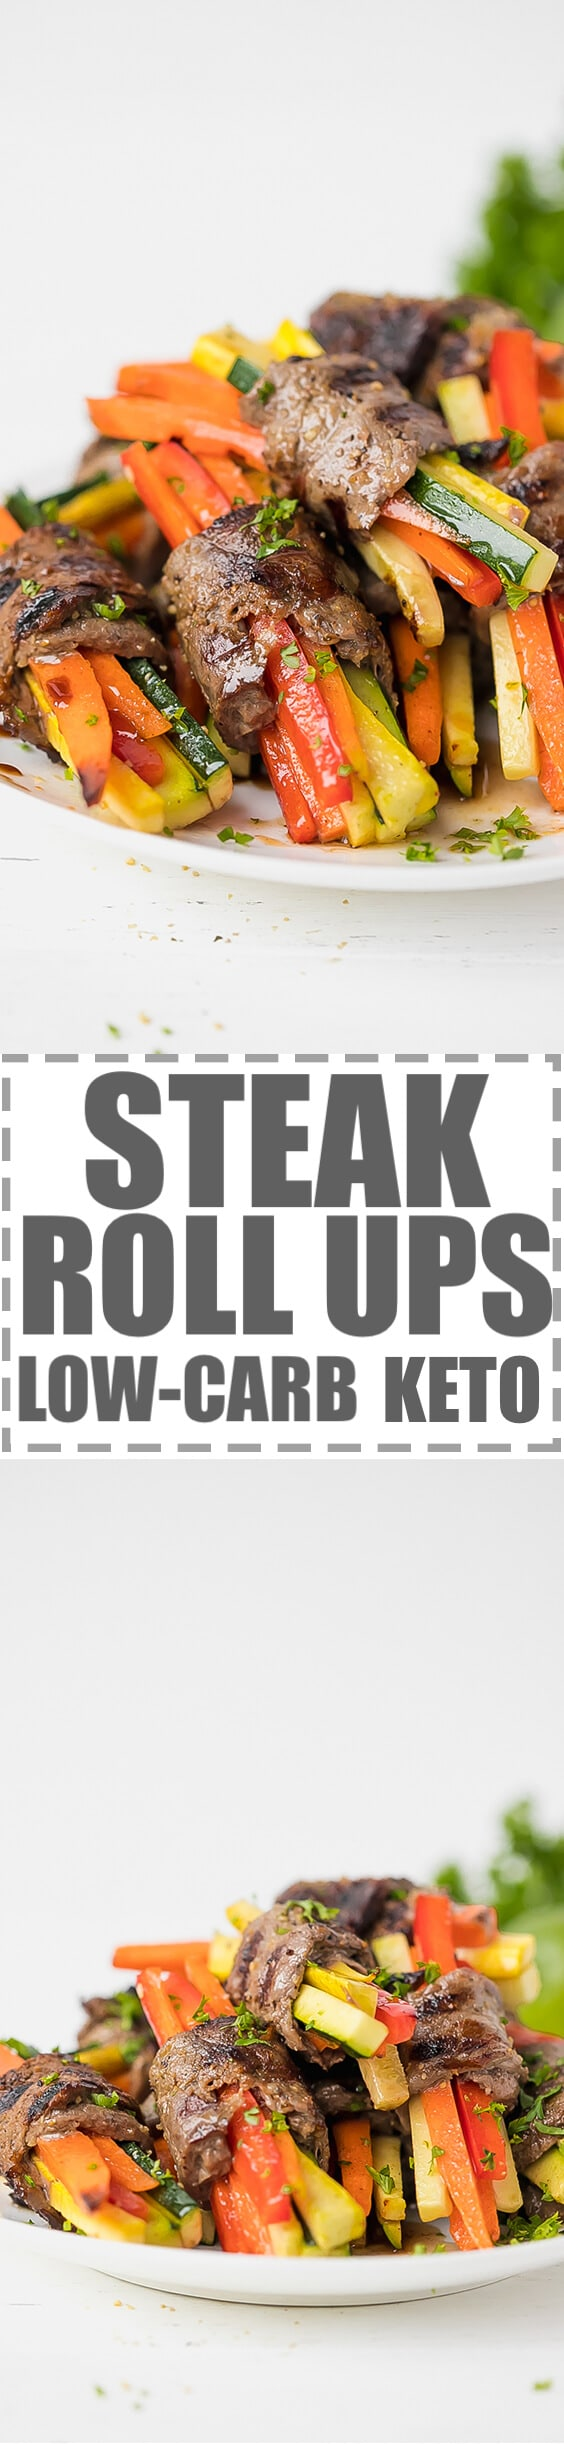 Easy Steak Rolls Recipe With Veggies Low-Carb, Keto - very easy to make, juicy steak strips rolled around julienned carrots, peppers and zucchini, grilled to perfection. Great for an appetizer or a snack, but also could be served as a main dish. Low-carb, keto diet approved ingredients. #KETORECIPES #KETODIET #lowcarb #lowcarbrecipes #steakrecipe #steakrollups